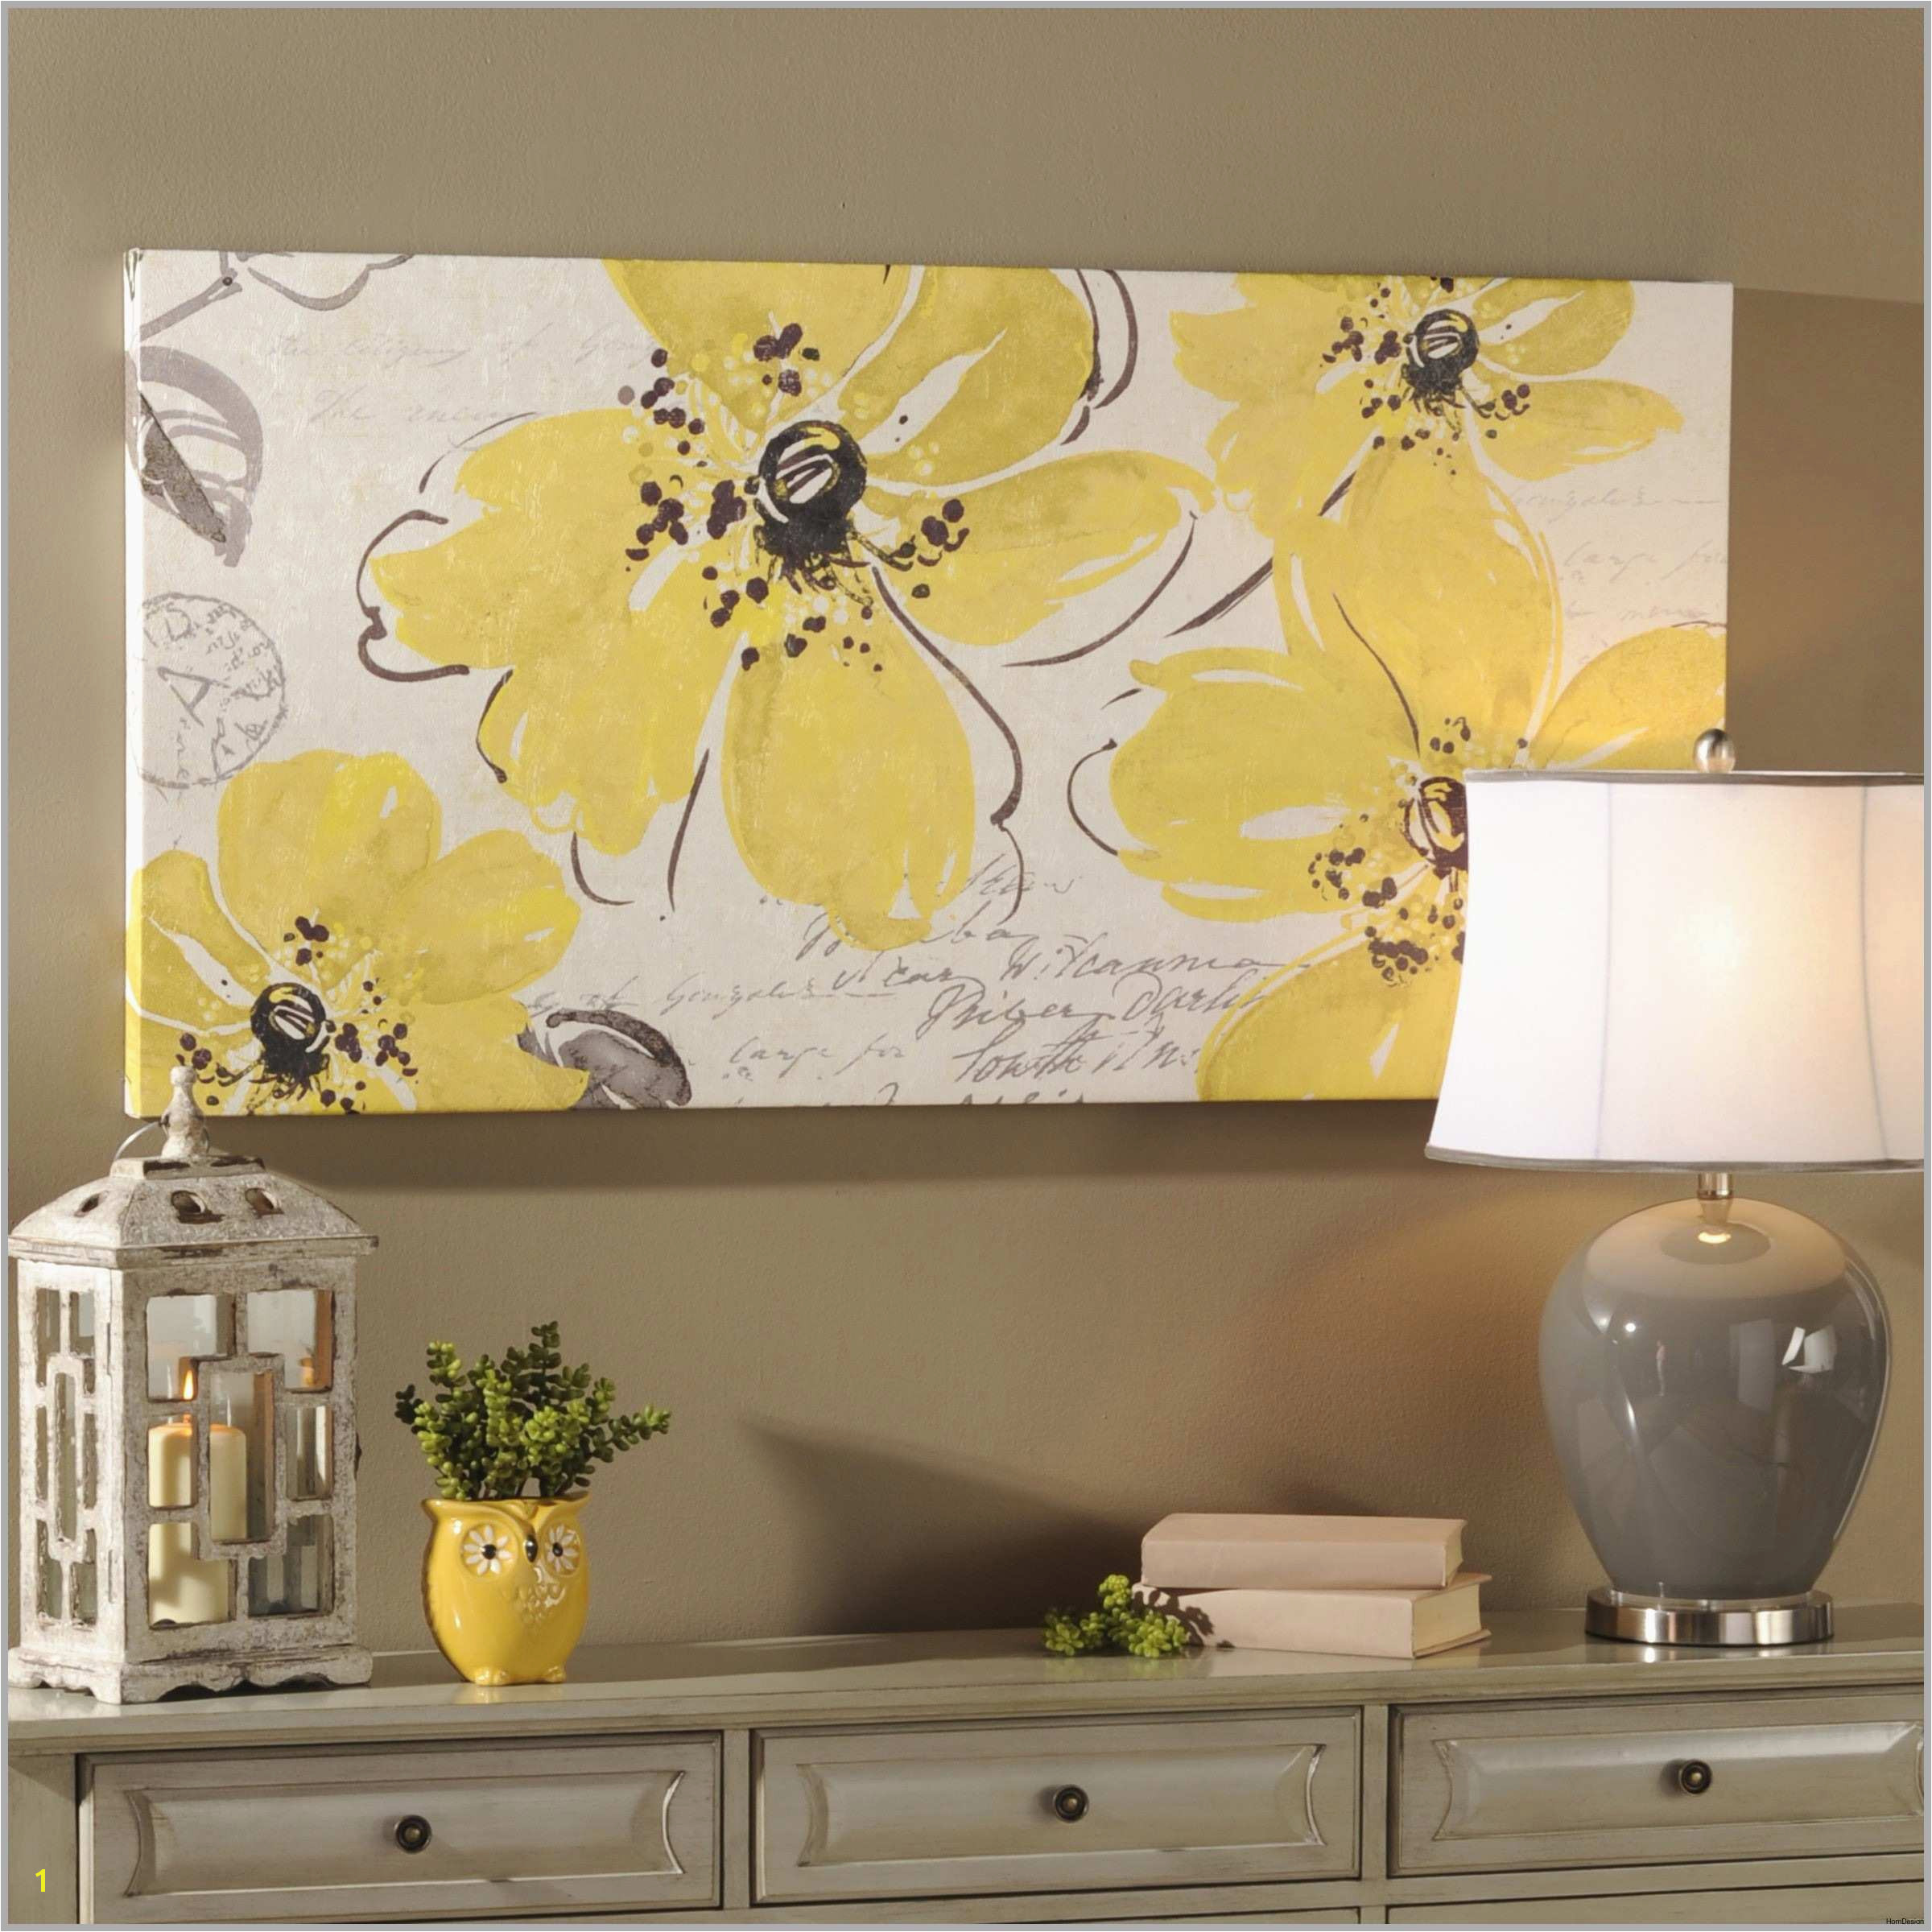 Difference Between Wallpaper and Wall Mural Difference Between Wallpaper and Wall Mural Elegant 3 D Wall Art